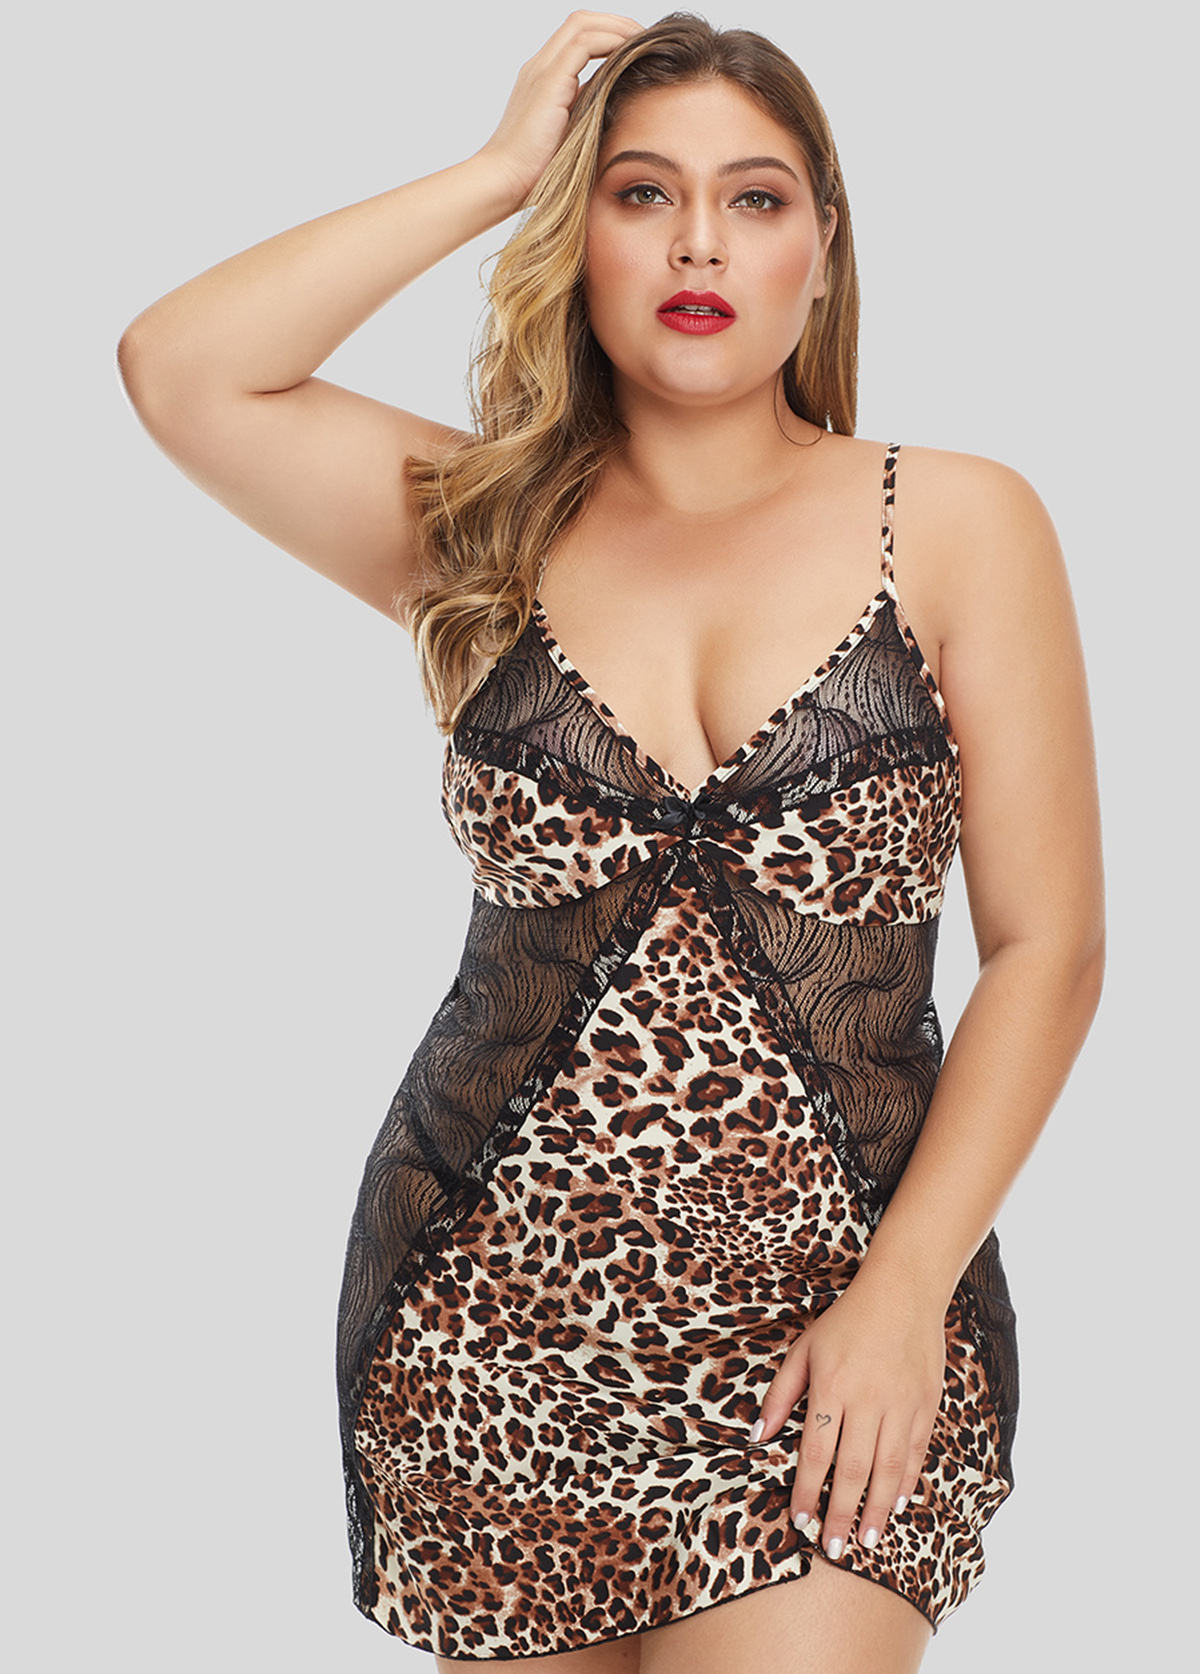 V Neck Plus Size Spaghetti Strap Camisole Top and Panty